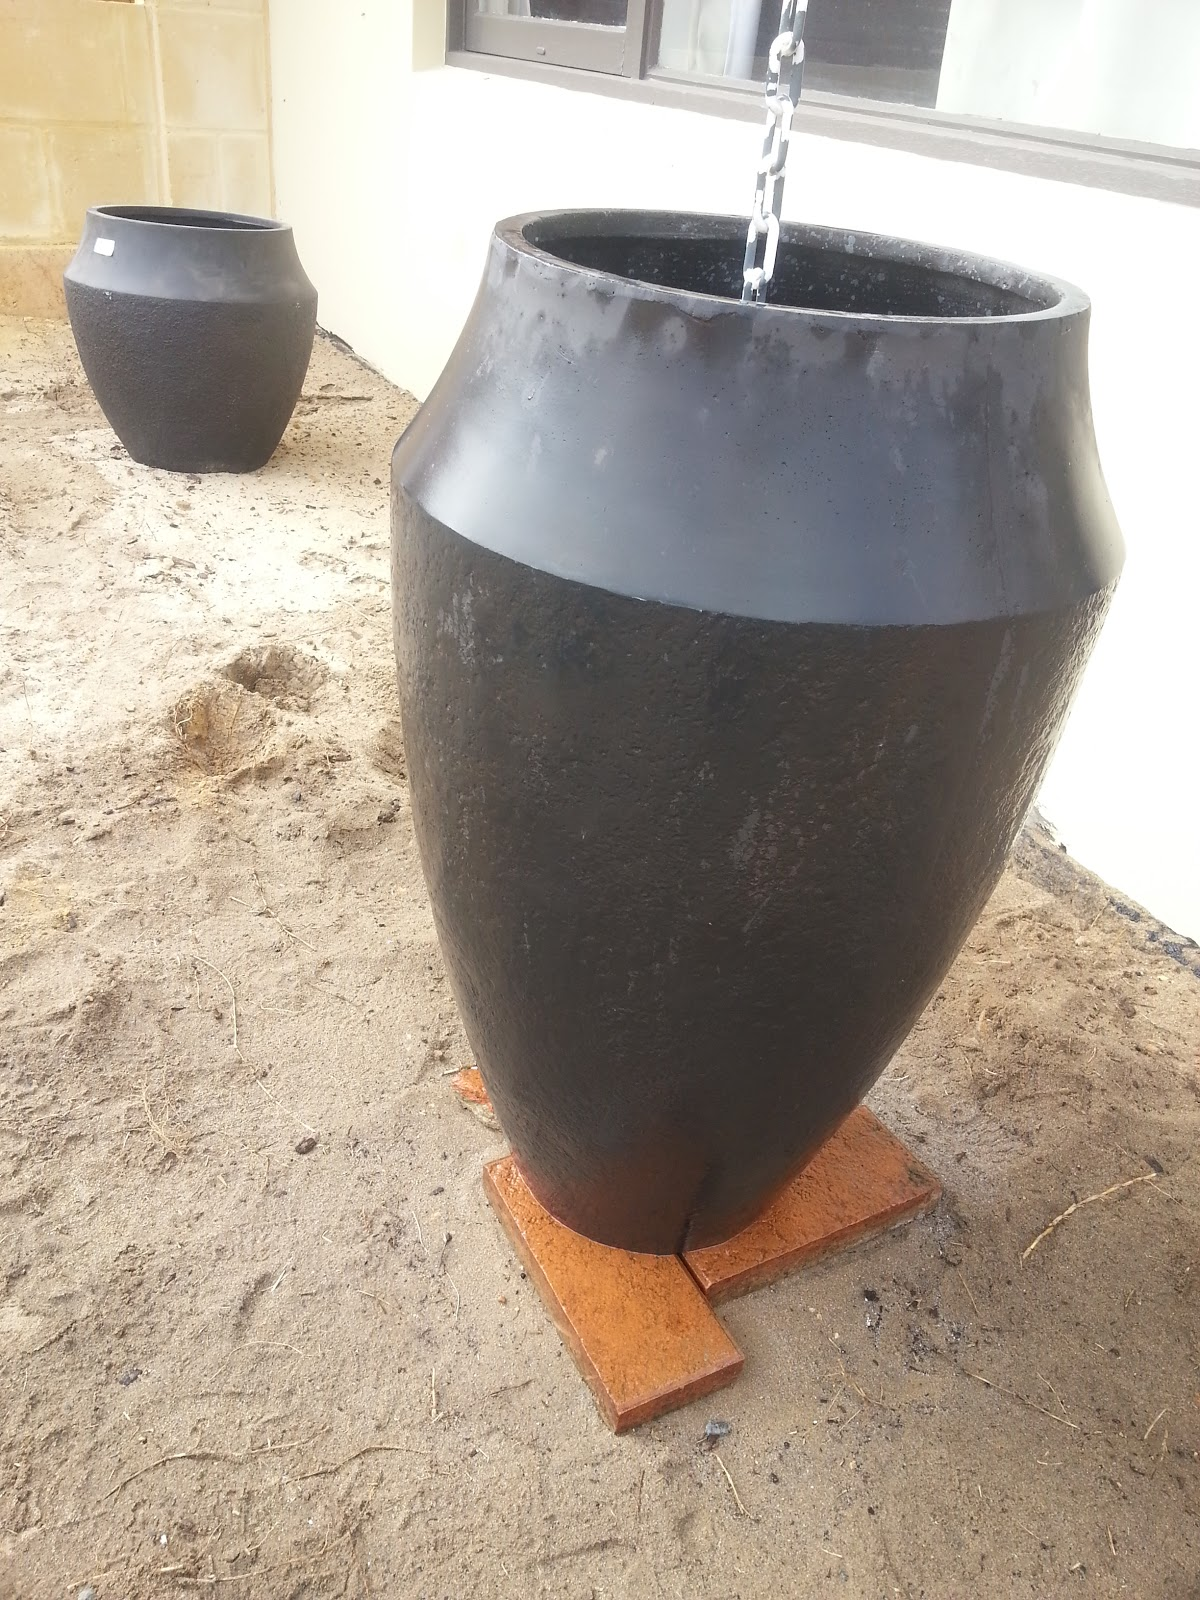 how to make soil drain better in pots